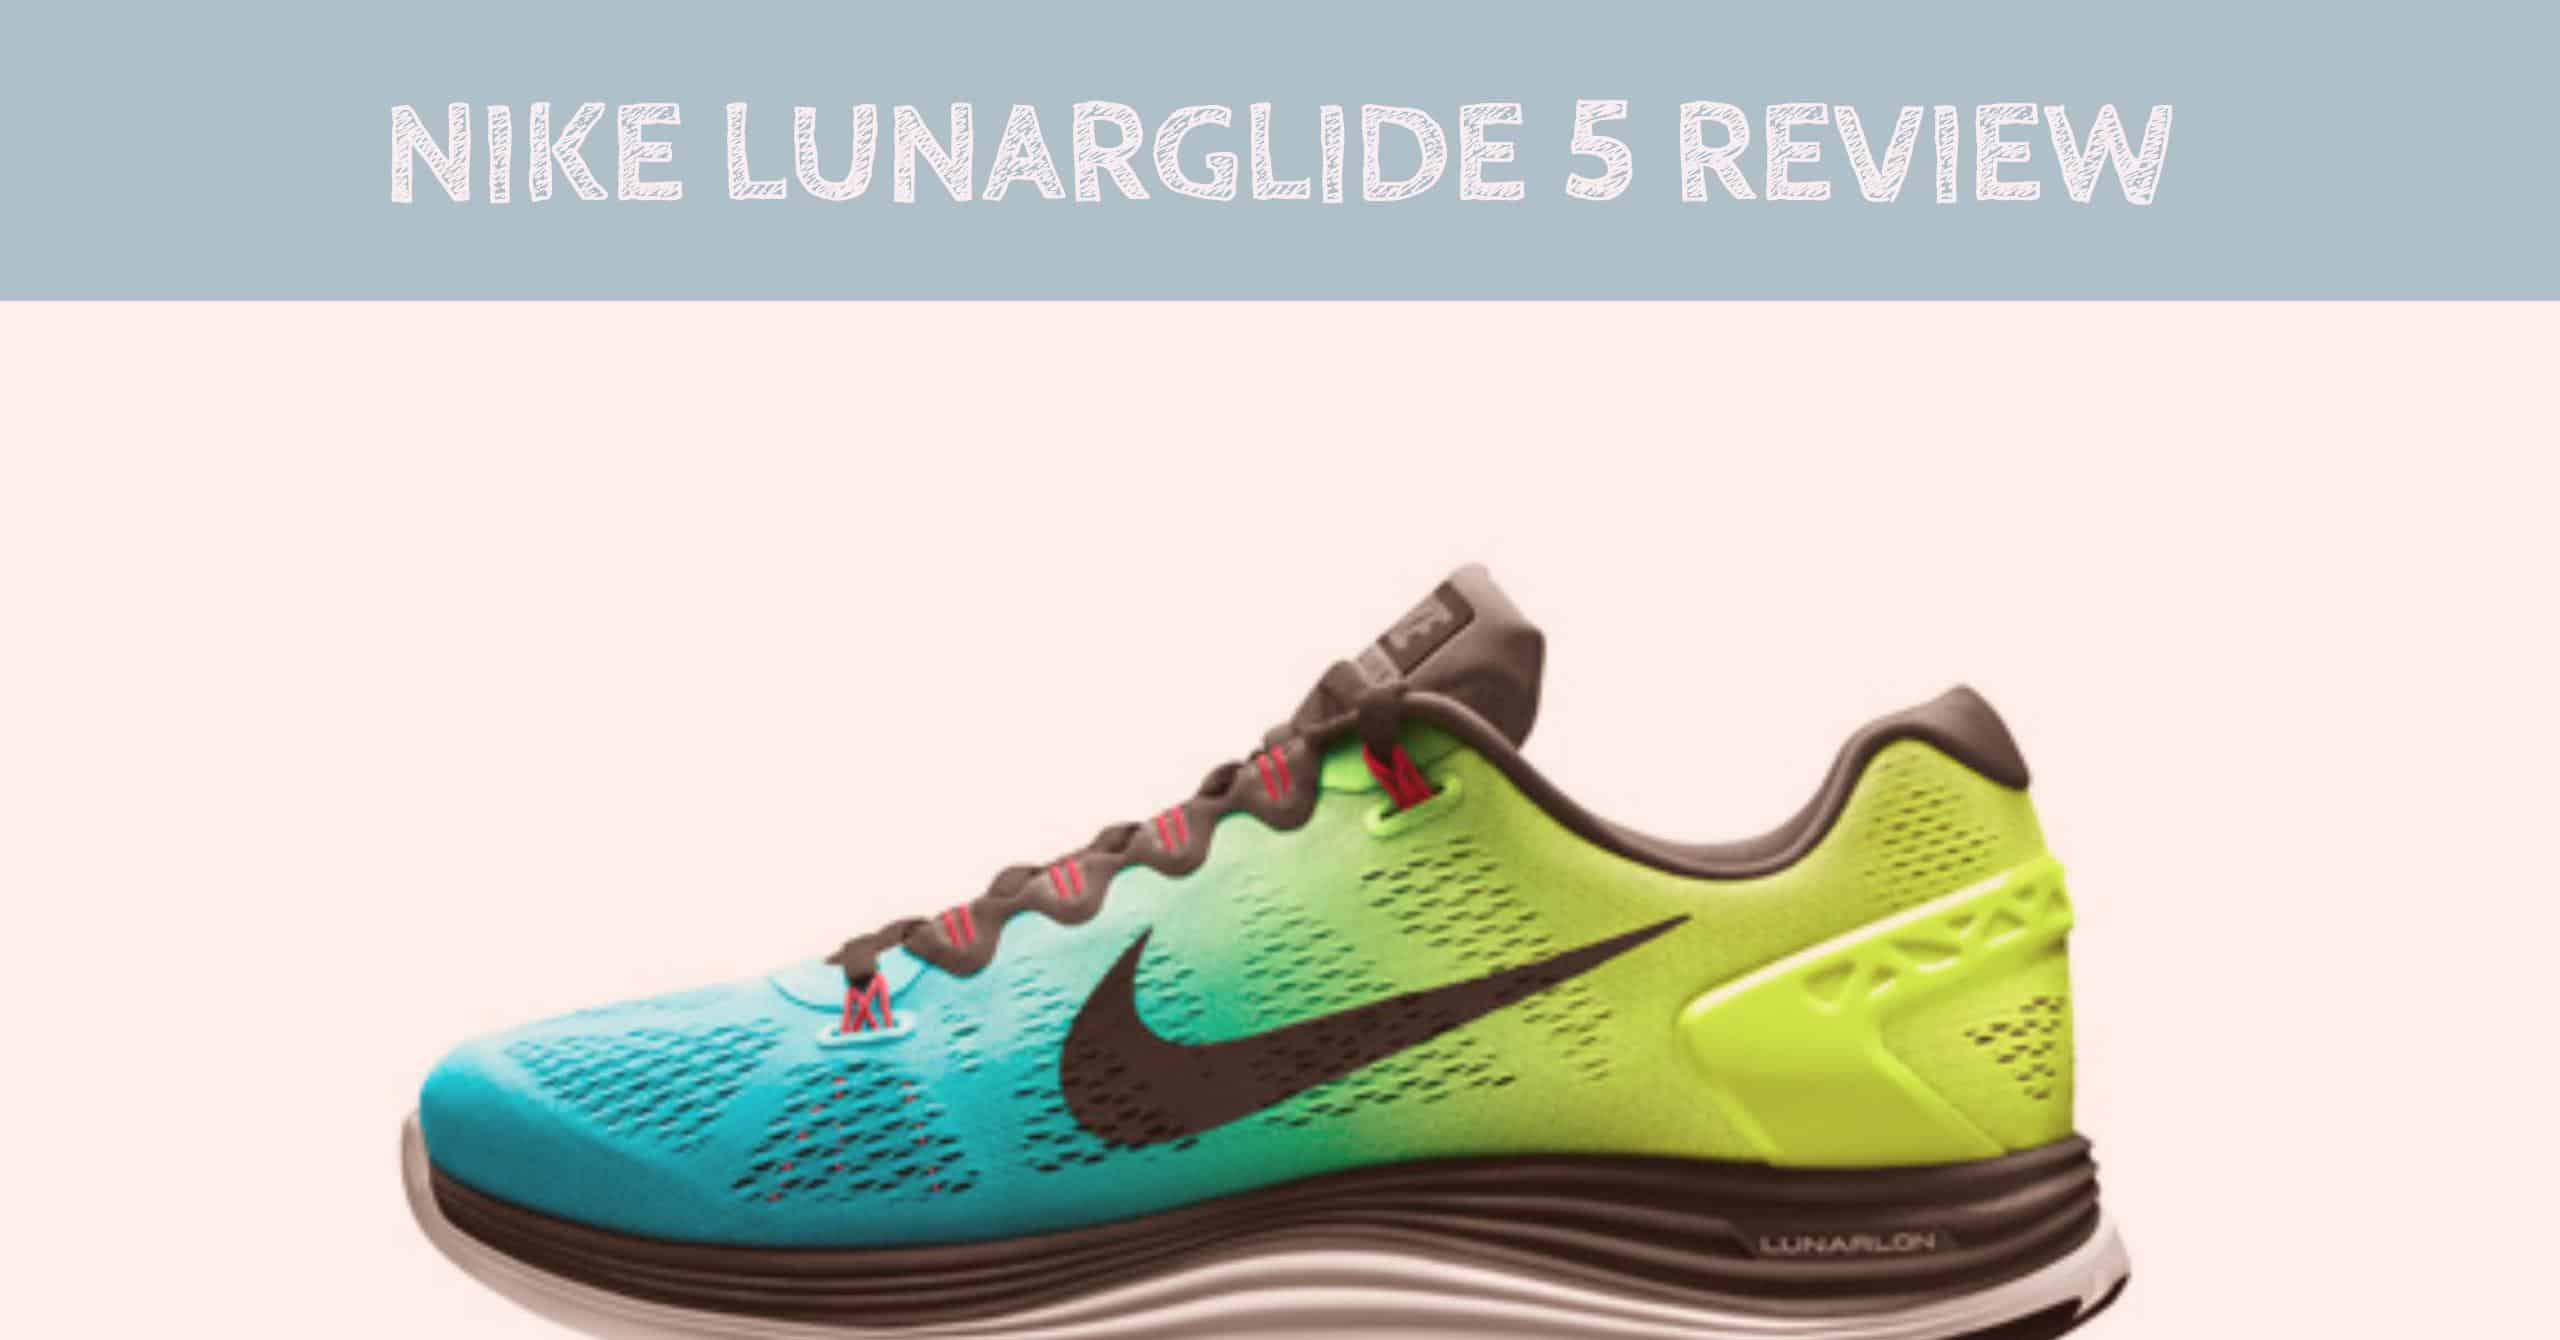 regarder 652d8 9d554 Nike Lunarglide 5 Review - Train for a 5K.com